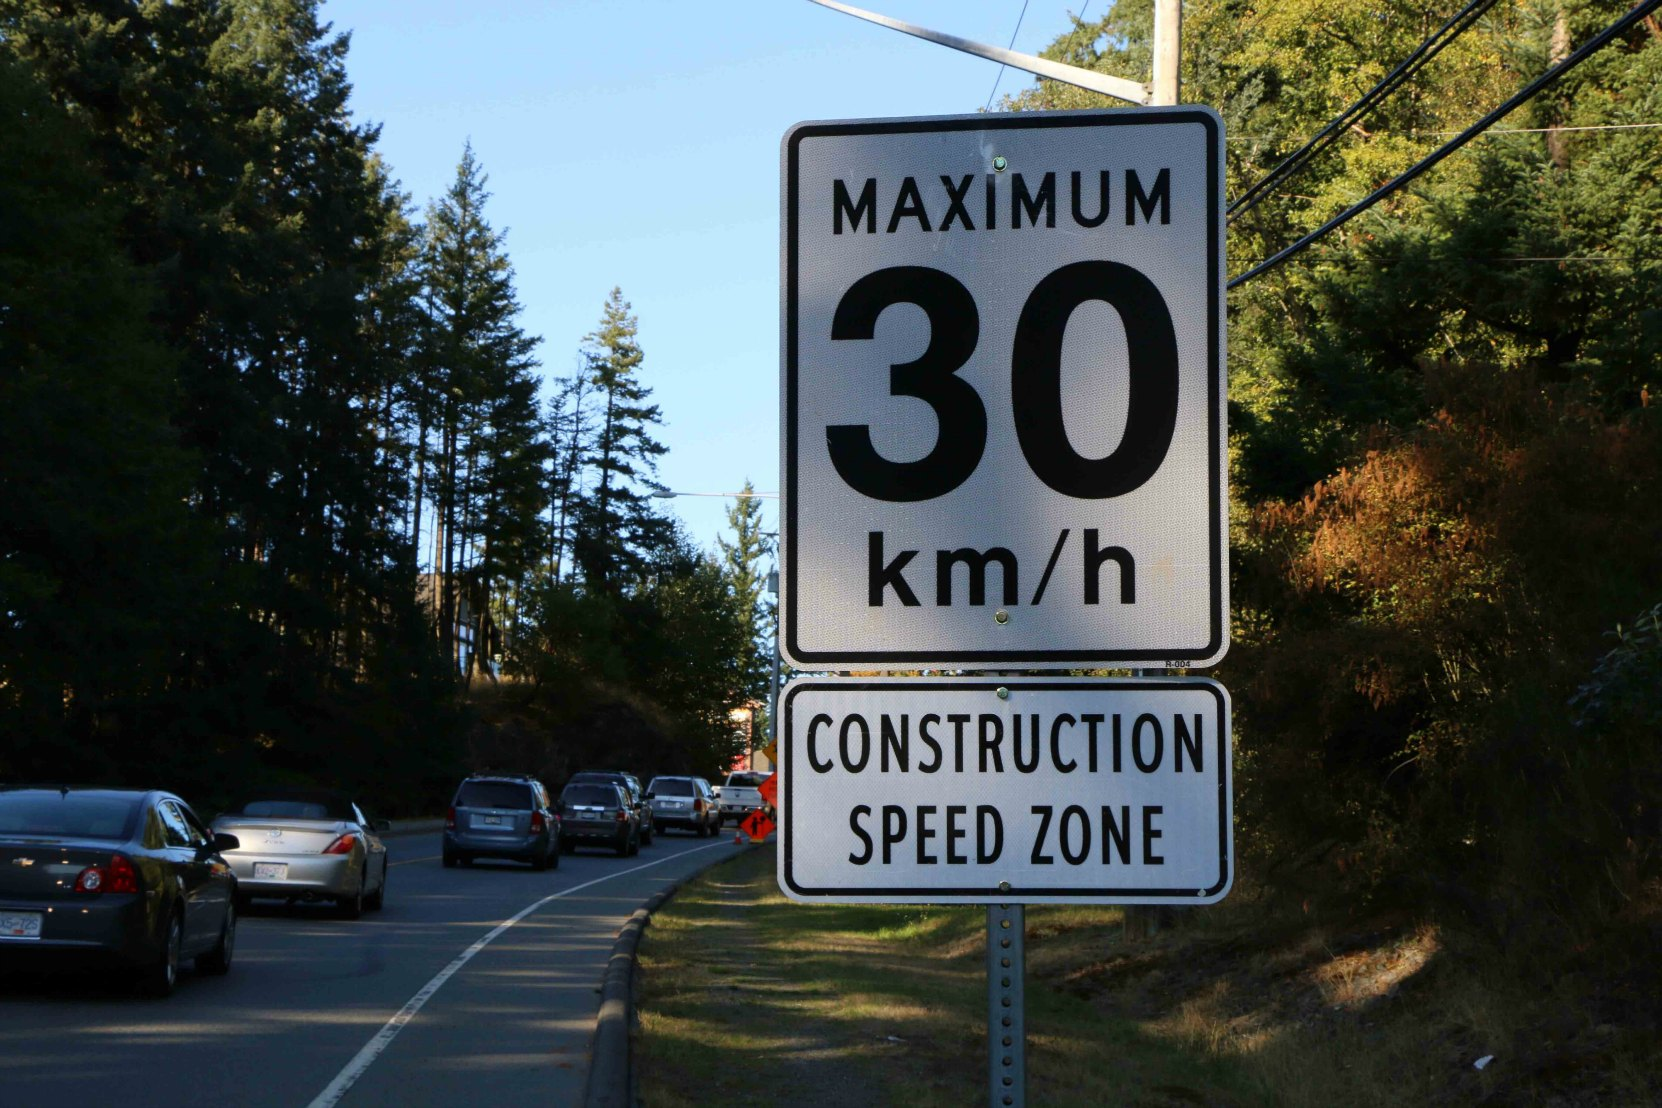 Highway construction zones in British Columbia typically display temporary Regulatory signs showing posted speed limit in the construction zone. (photo by WestCoastDriver Training.com)